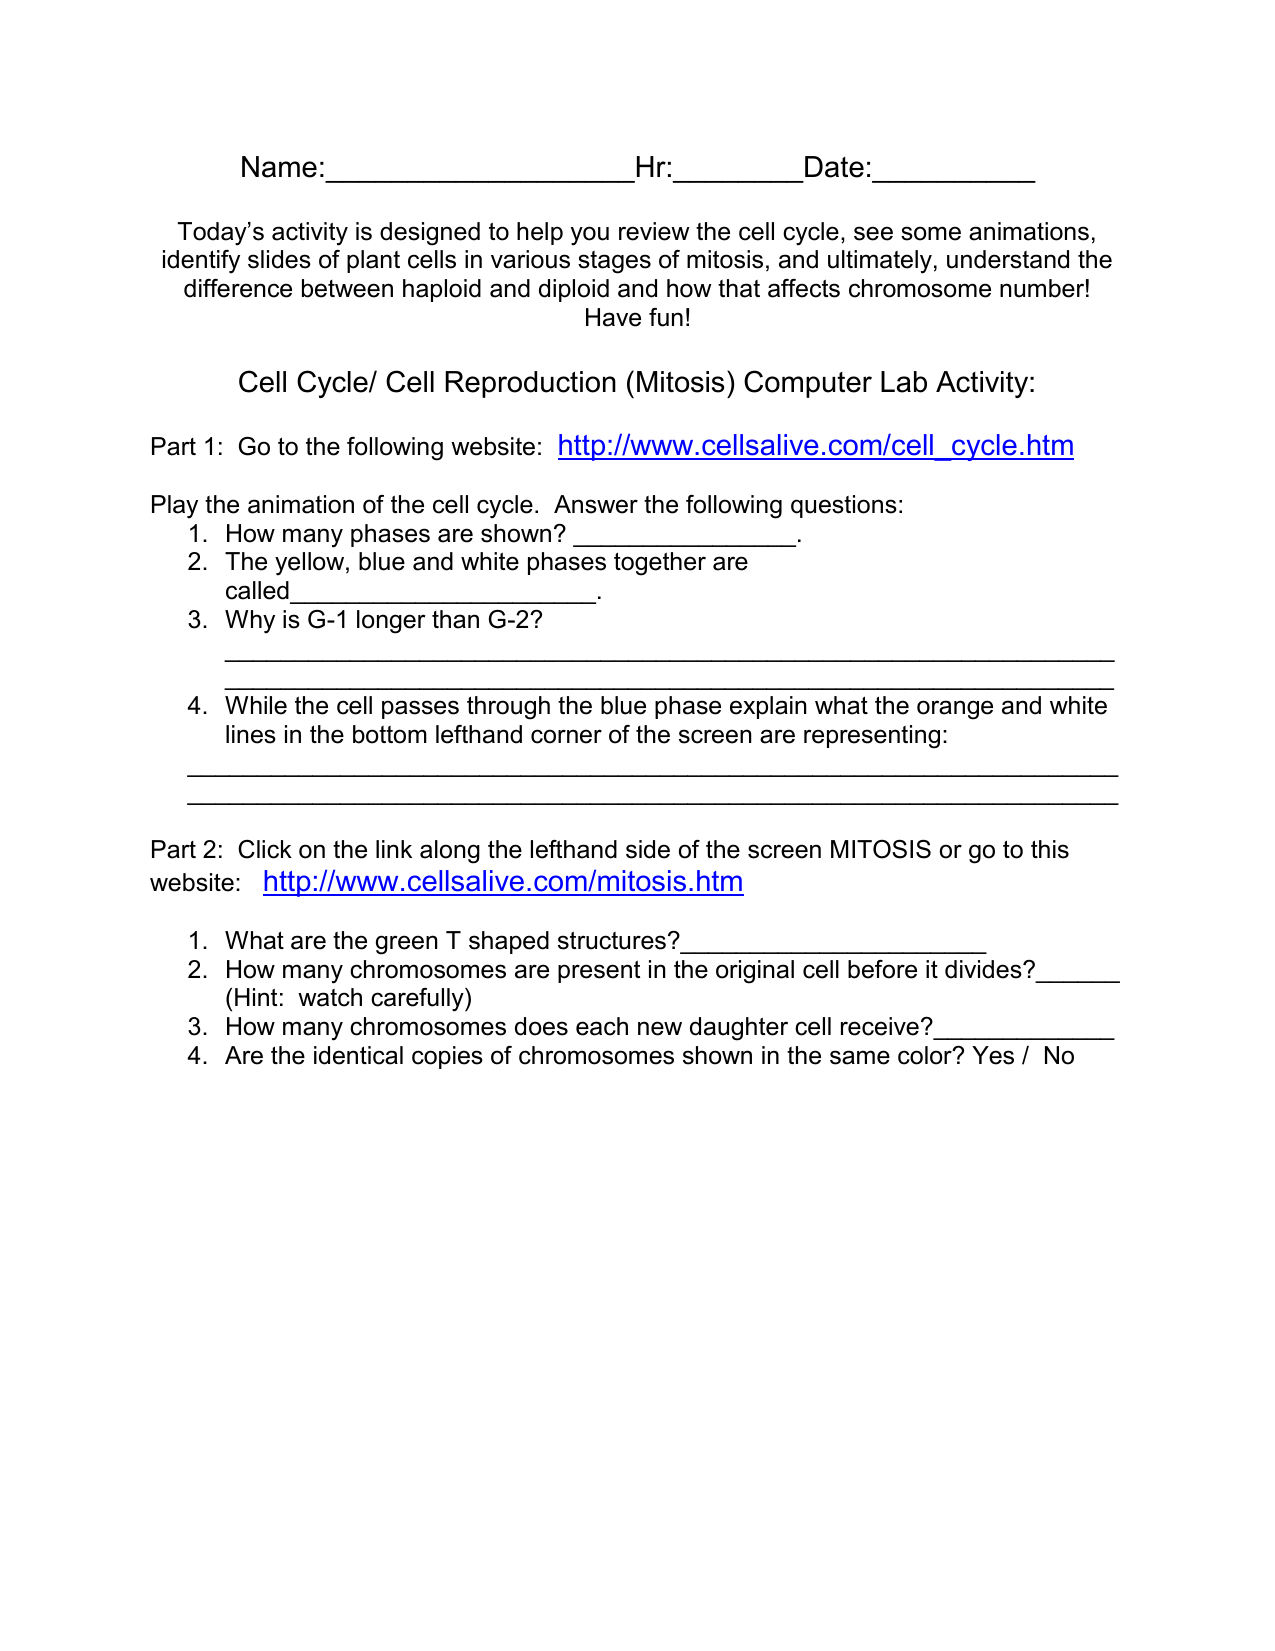 Uncategorized Onion Cell Mitosis Worksheet Answers cell cycle reproduction mitosis computer lab